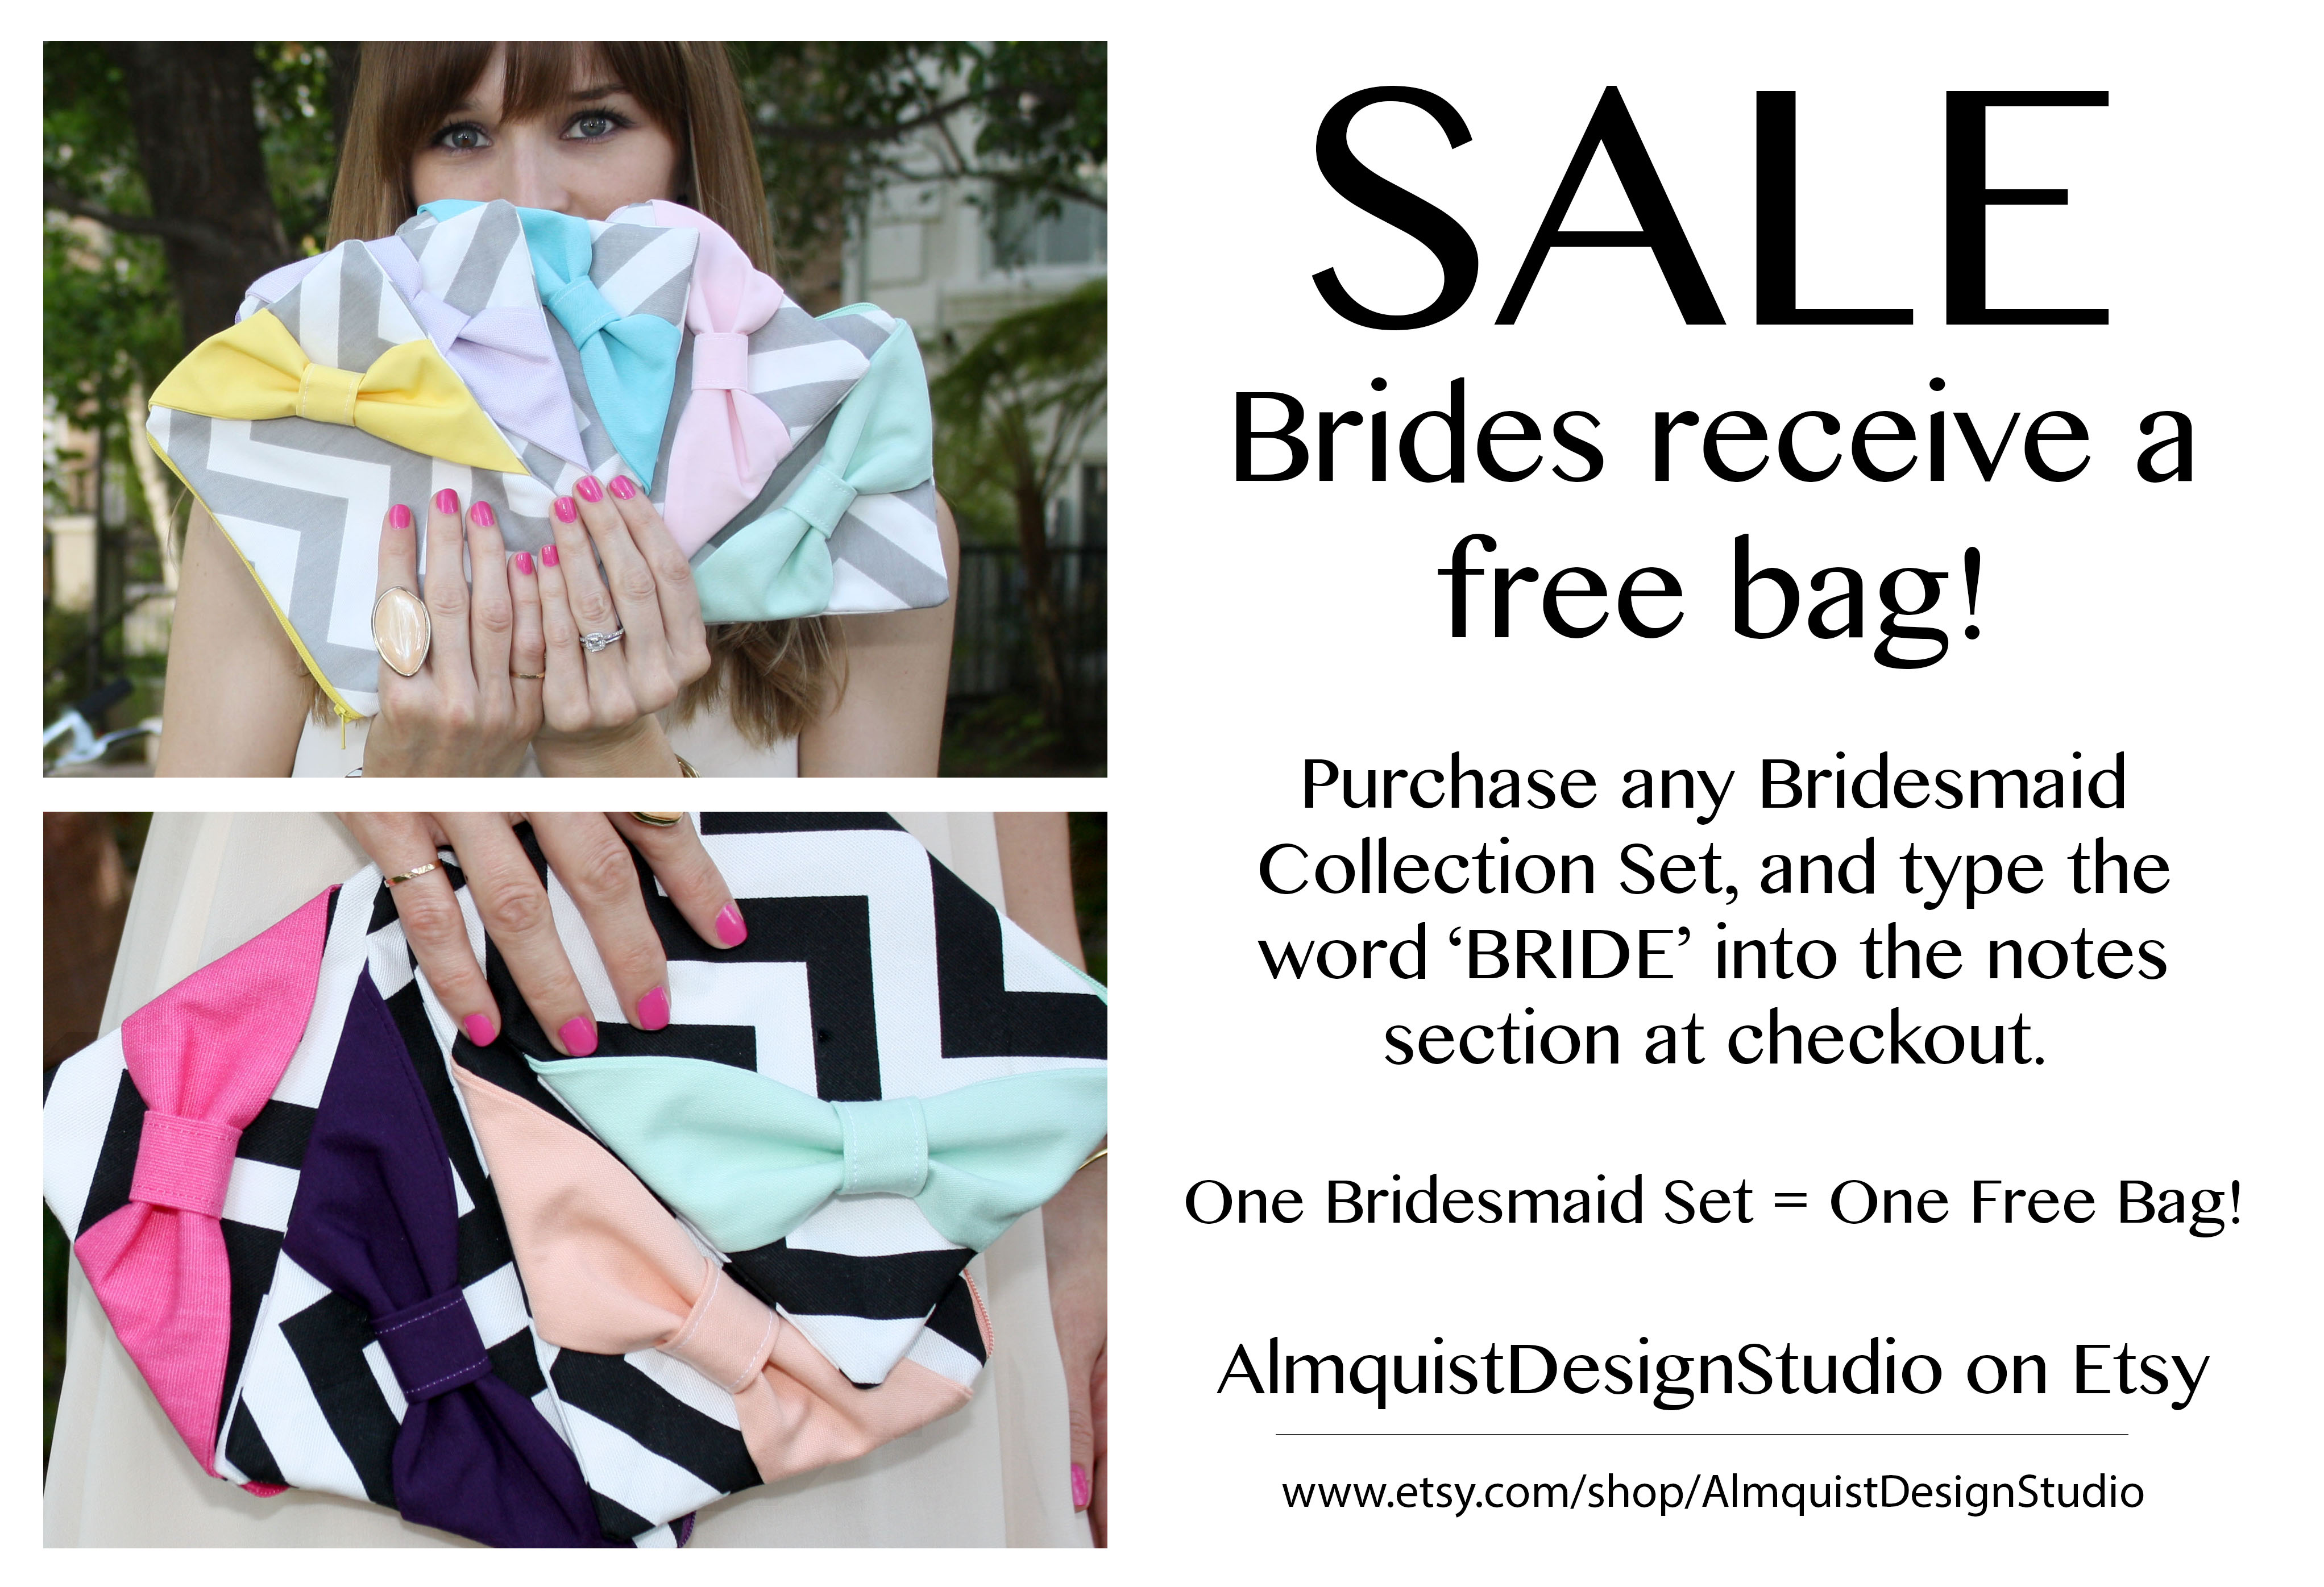 bridesmaid-sale.jpg